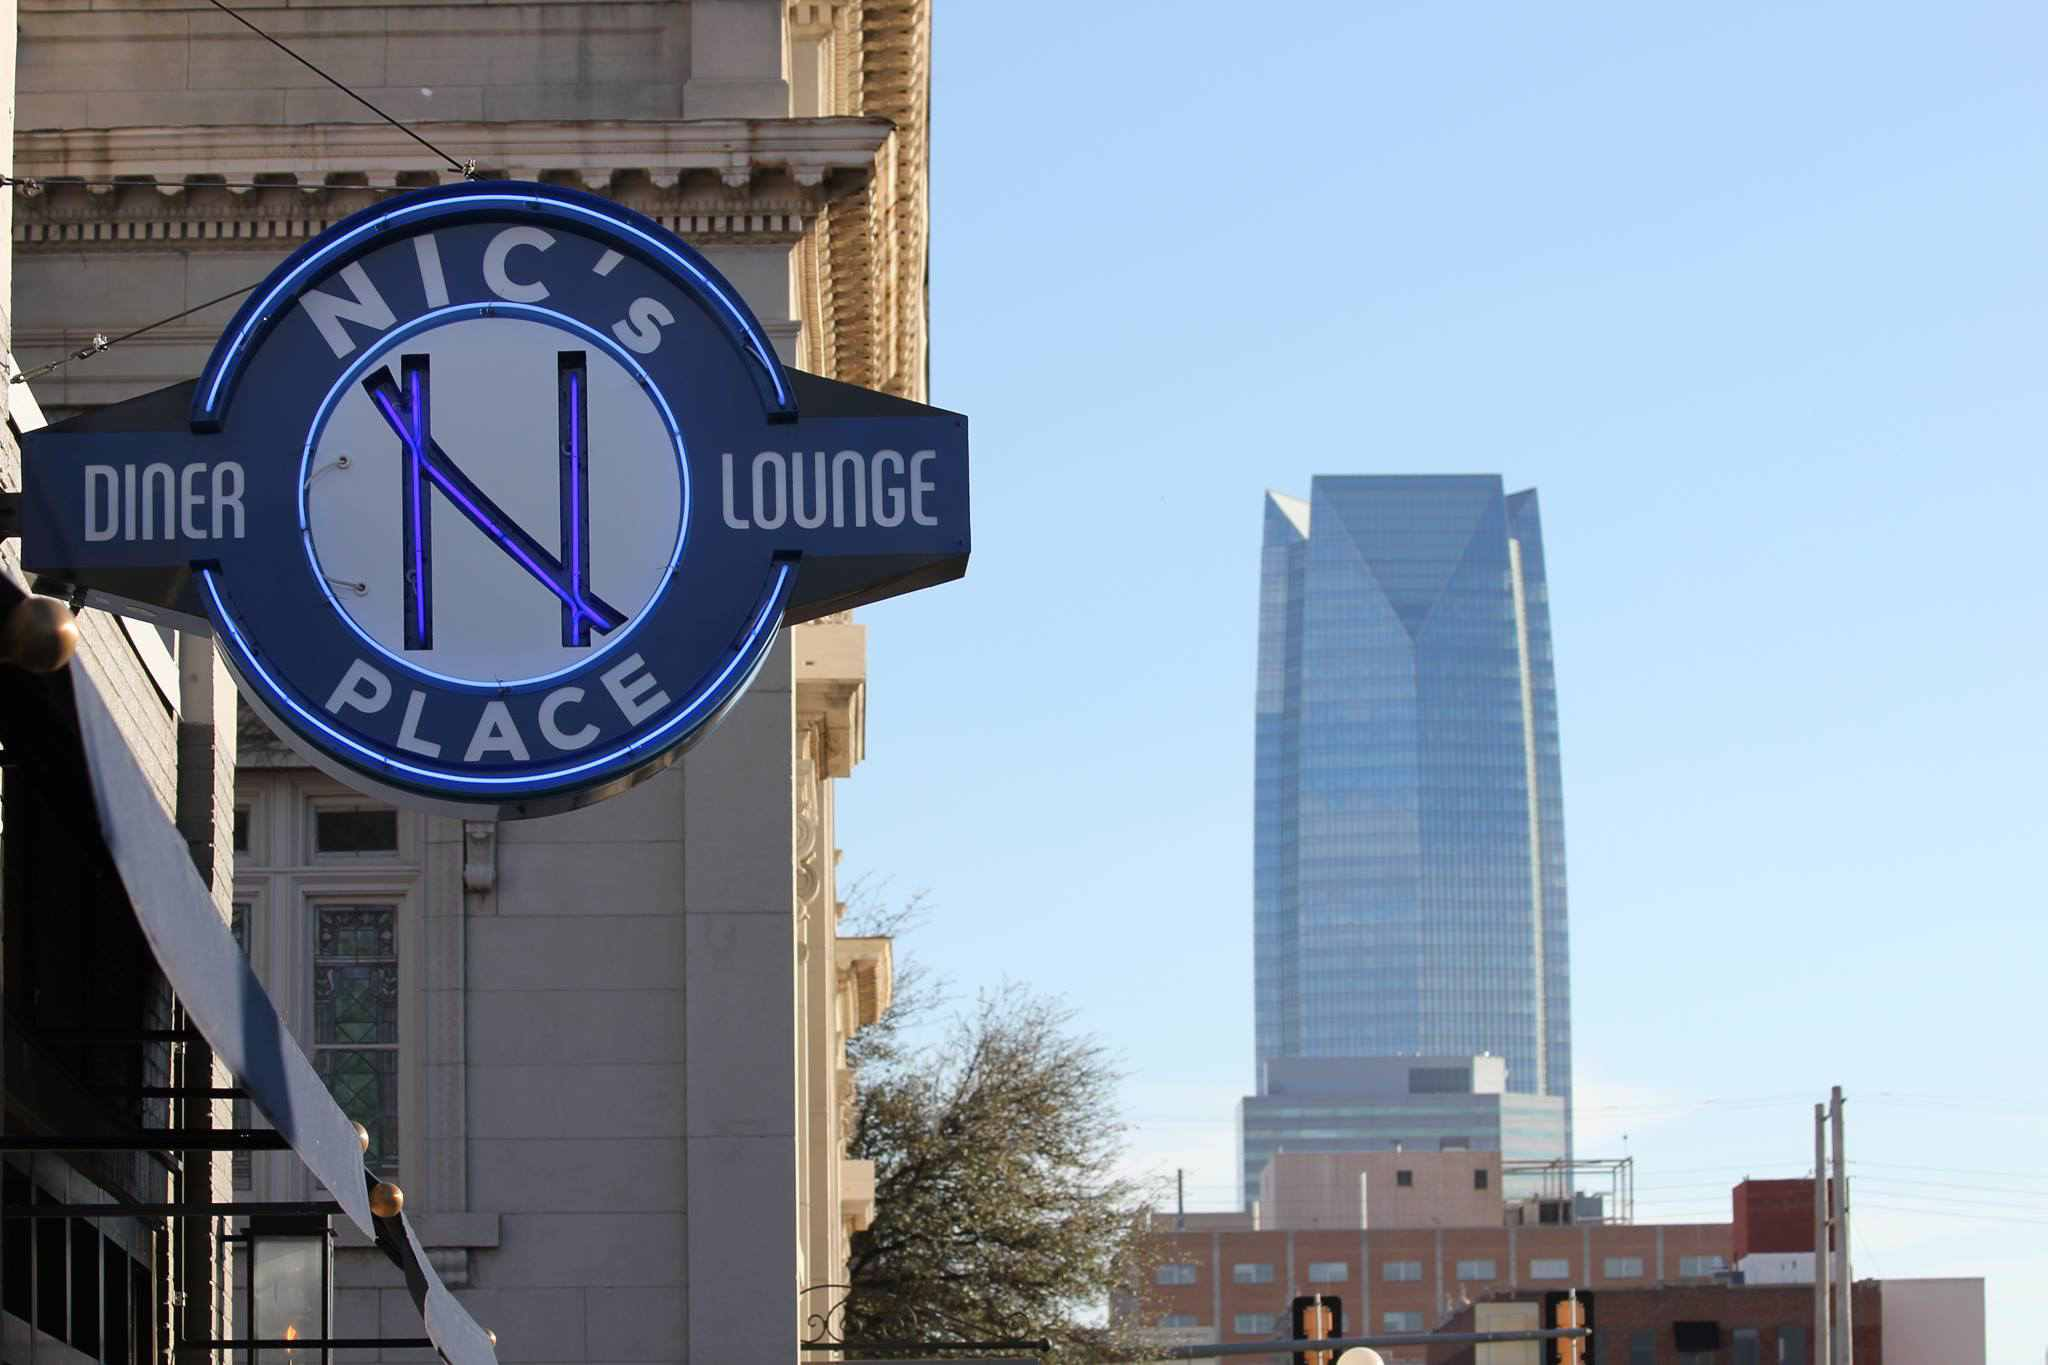 Nic's Place Diner & Lounge